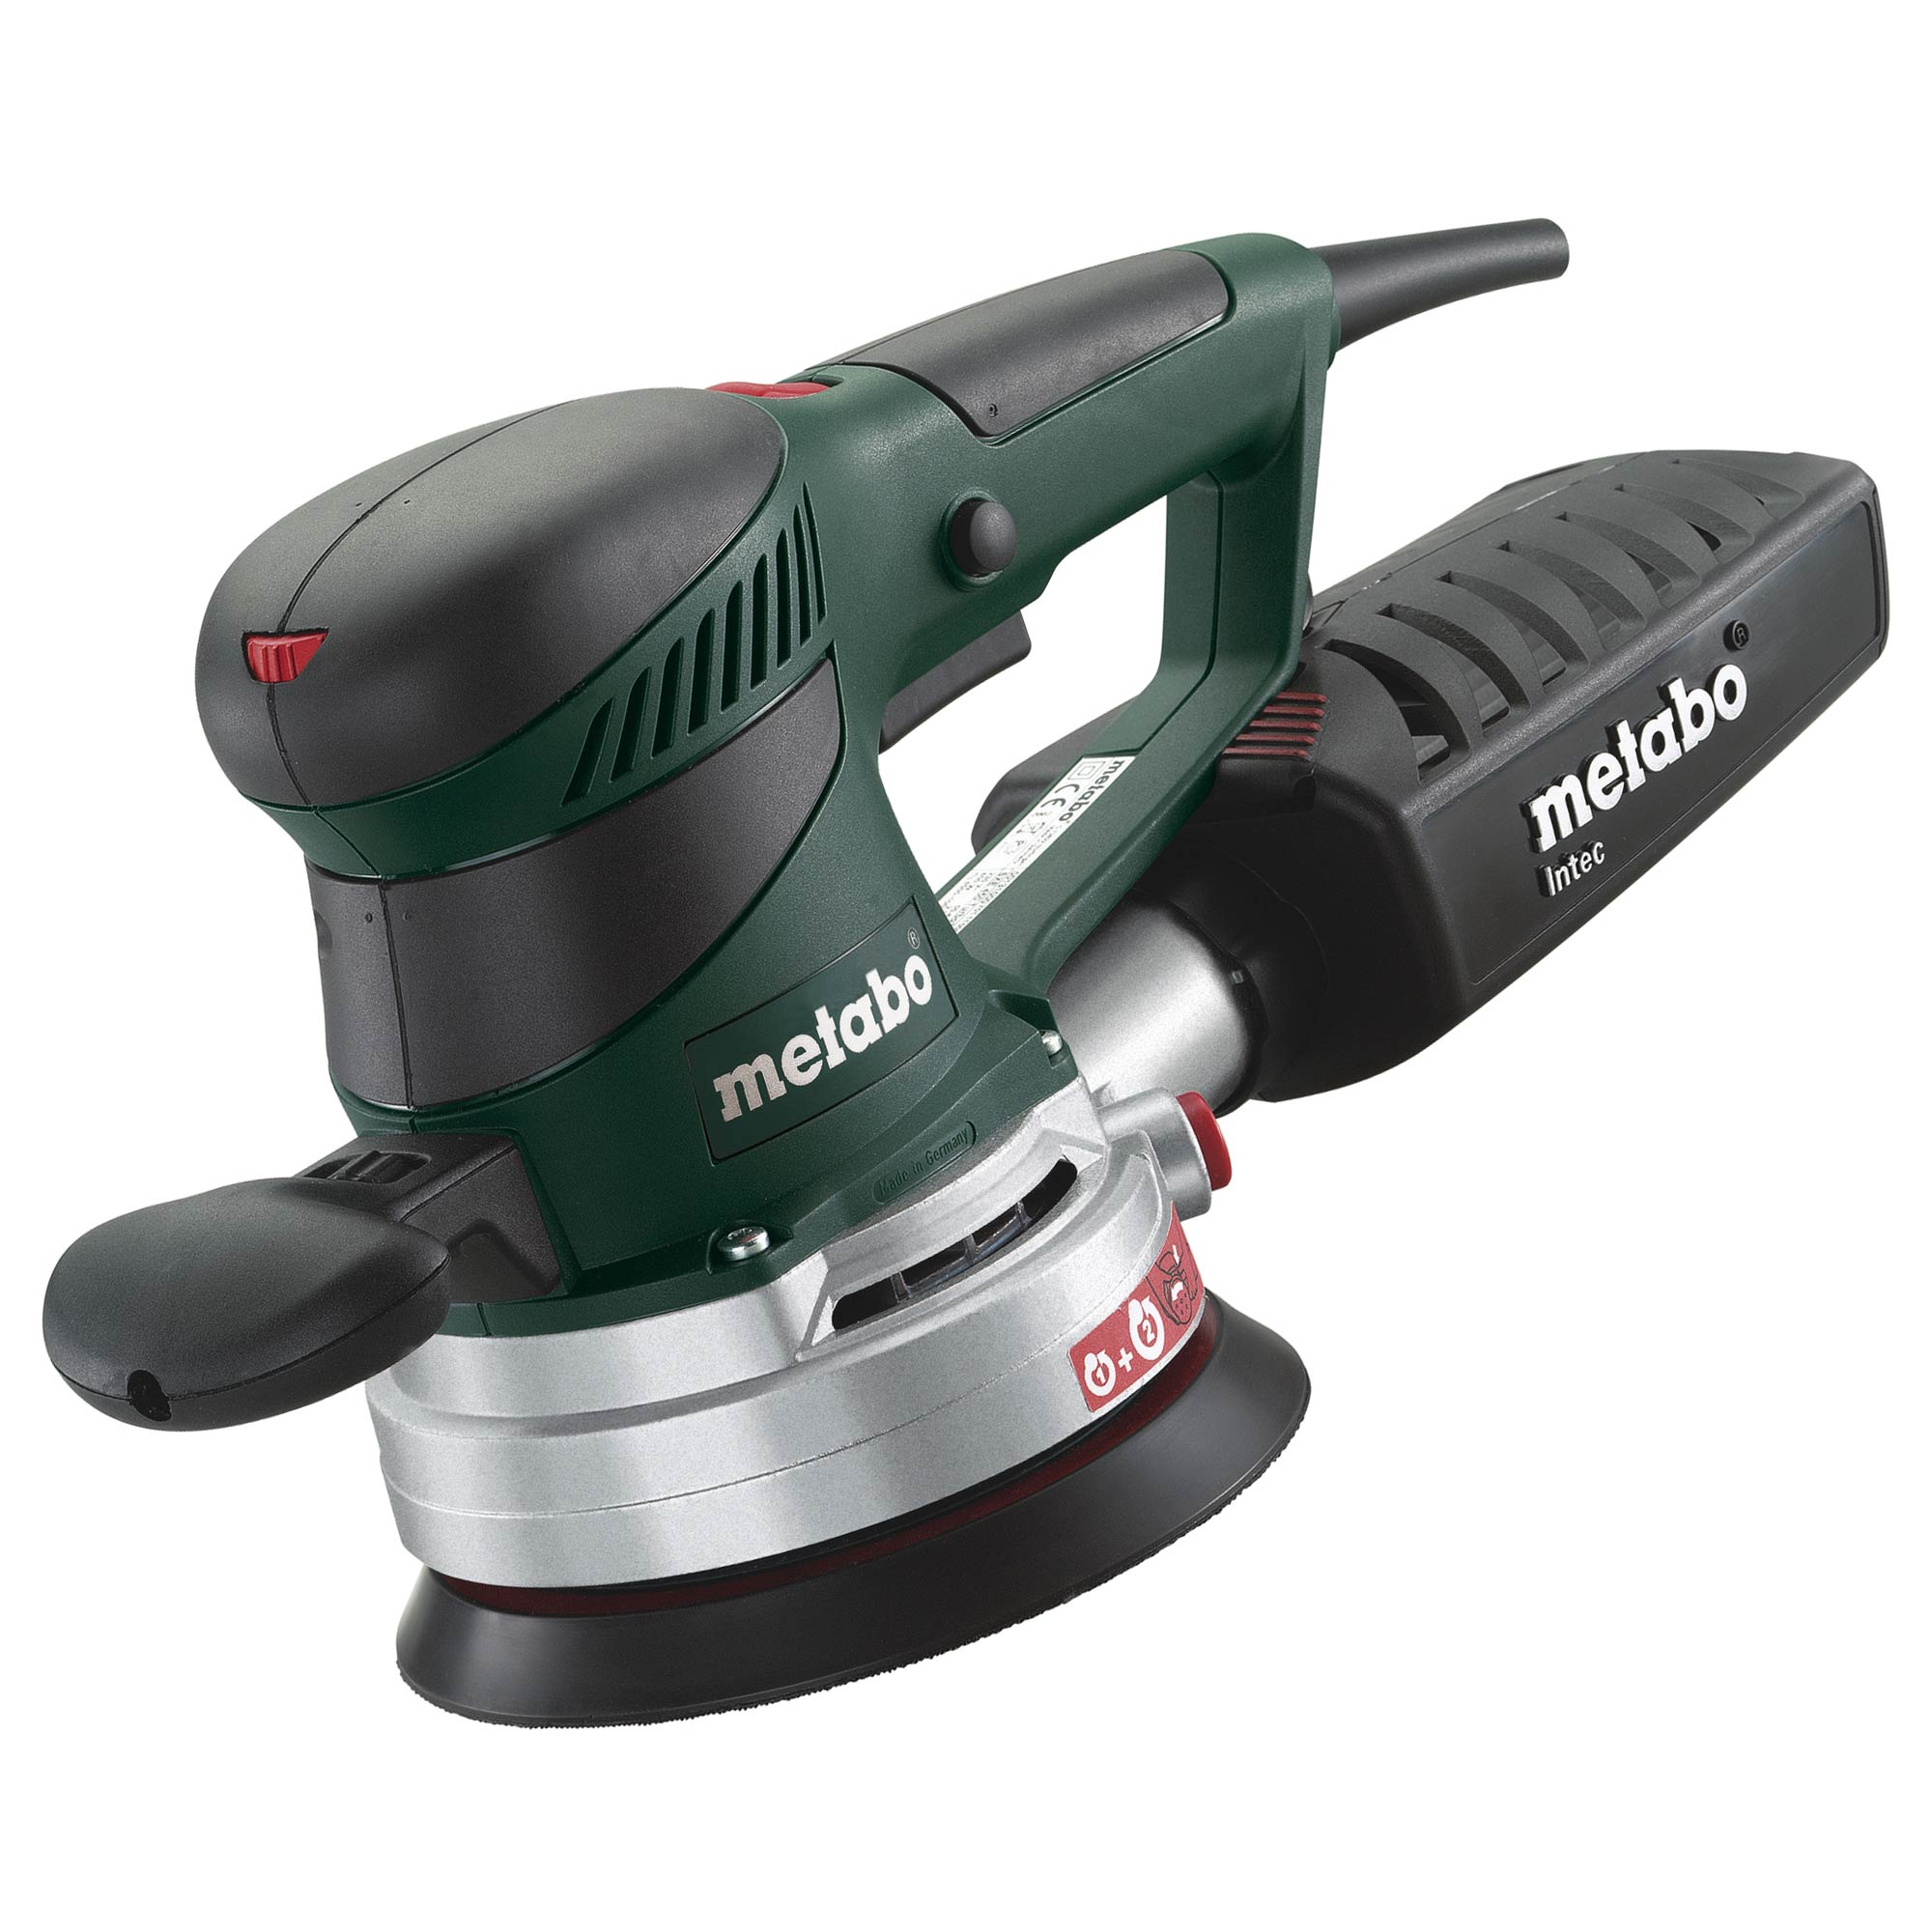 metabo sxe 450 tt metabo 150mm random orbital sander. Black Bedroom Furniture Sets. Home Design Ideas